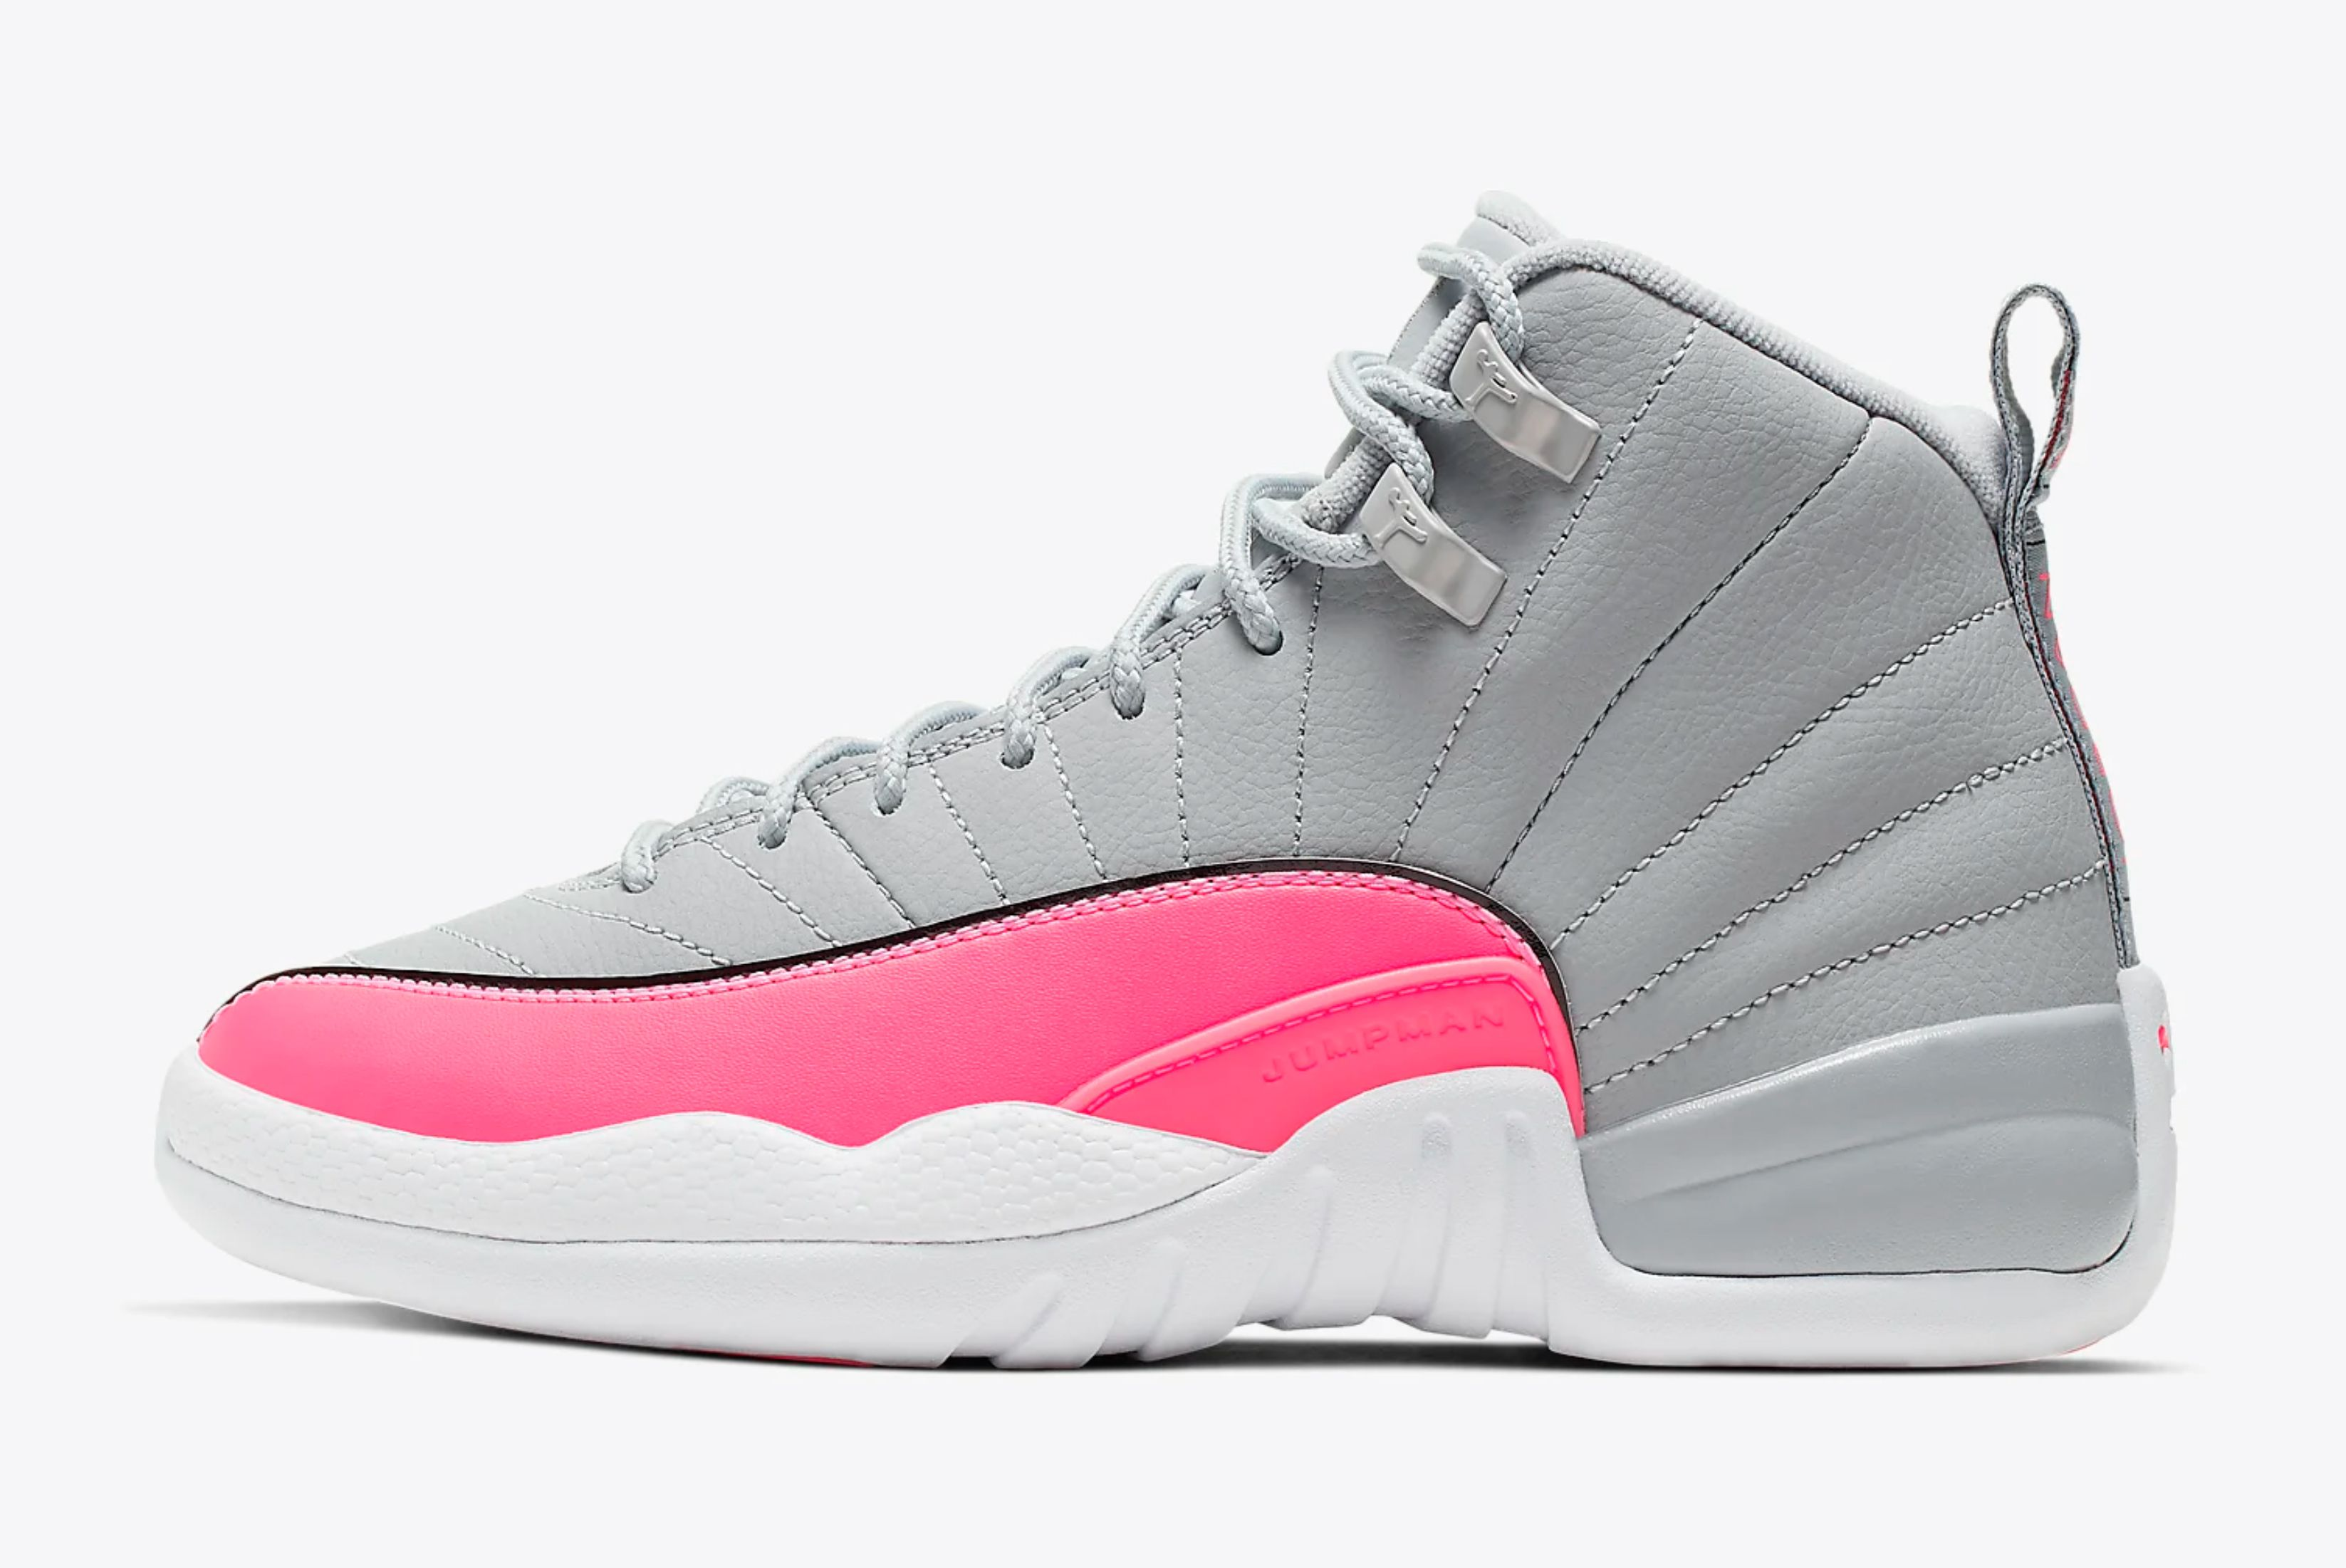 Air Jordan 12 GS (Wolf Grey/Racer Pink)